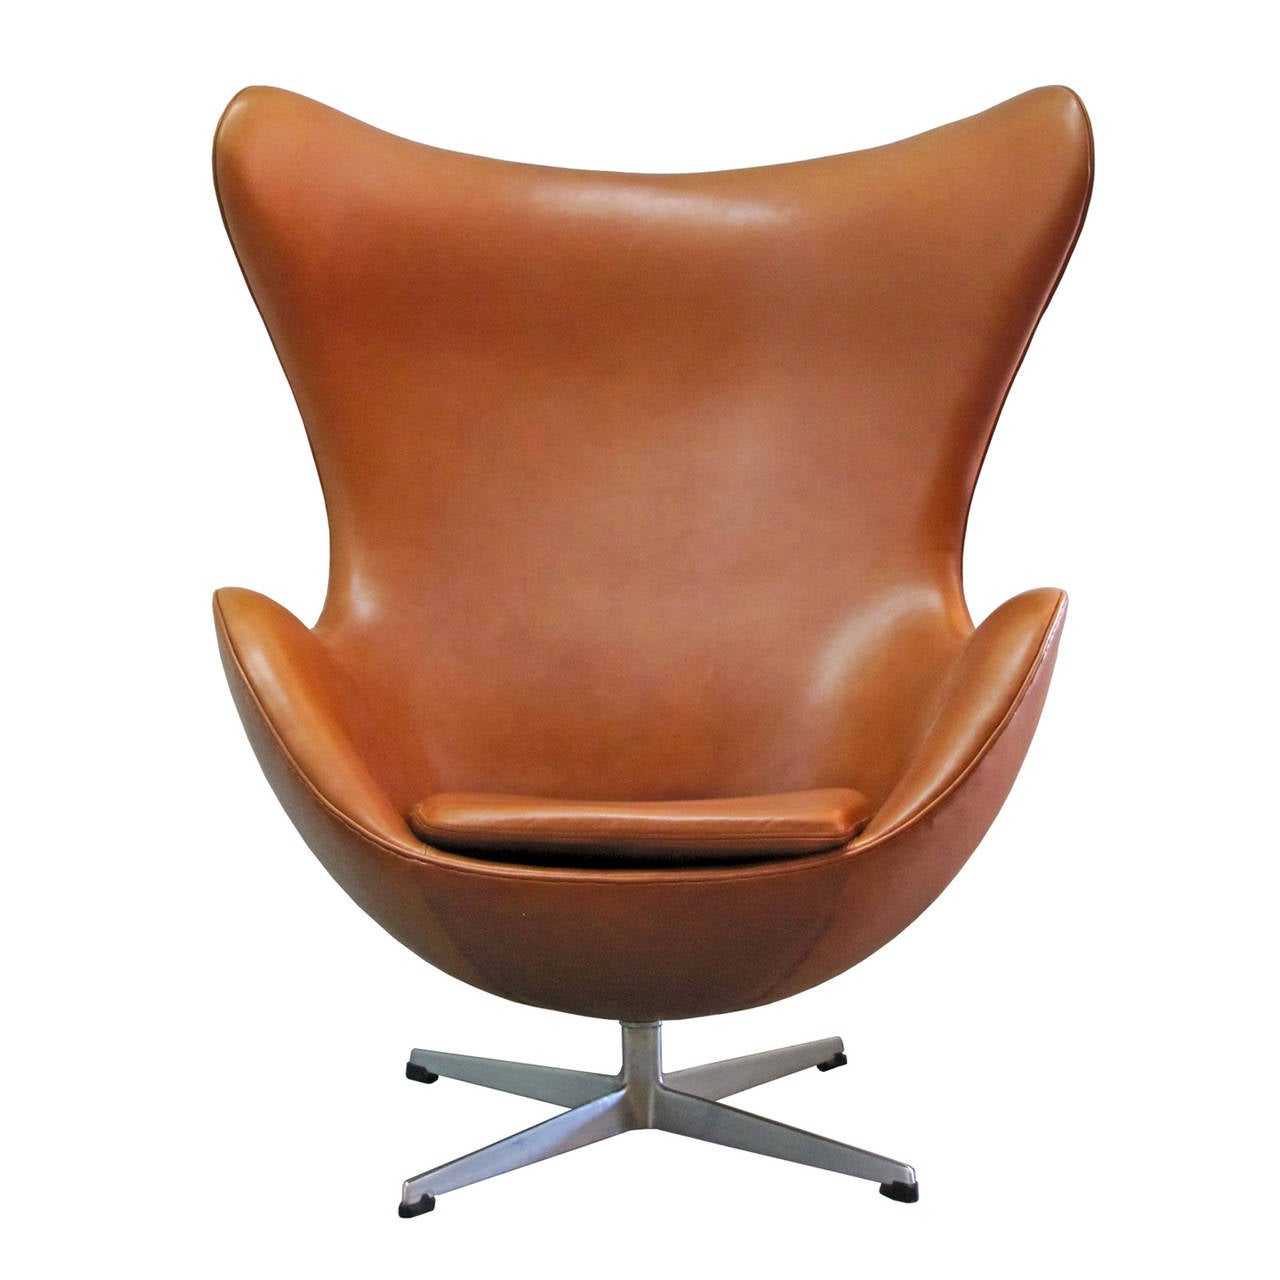 Reupholstered chair - This Arne Jacobsen Egg Chair Is No Longer Available